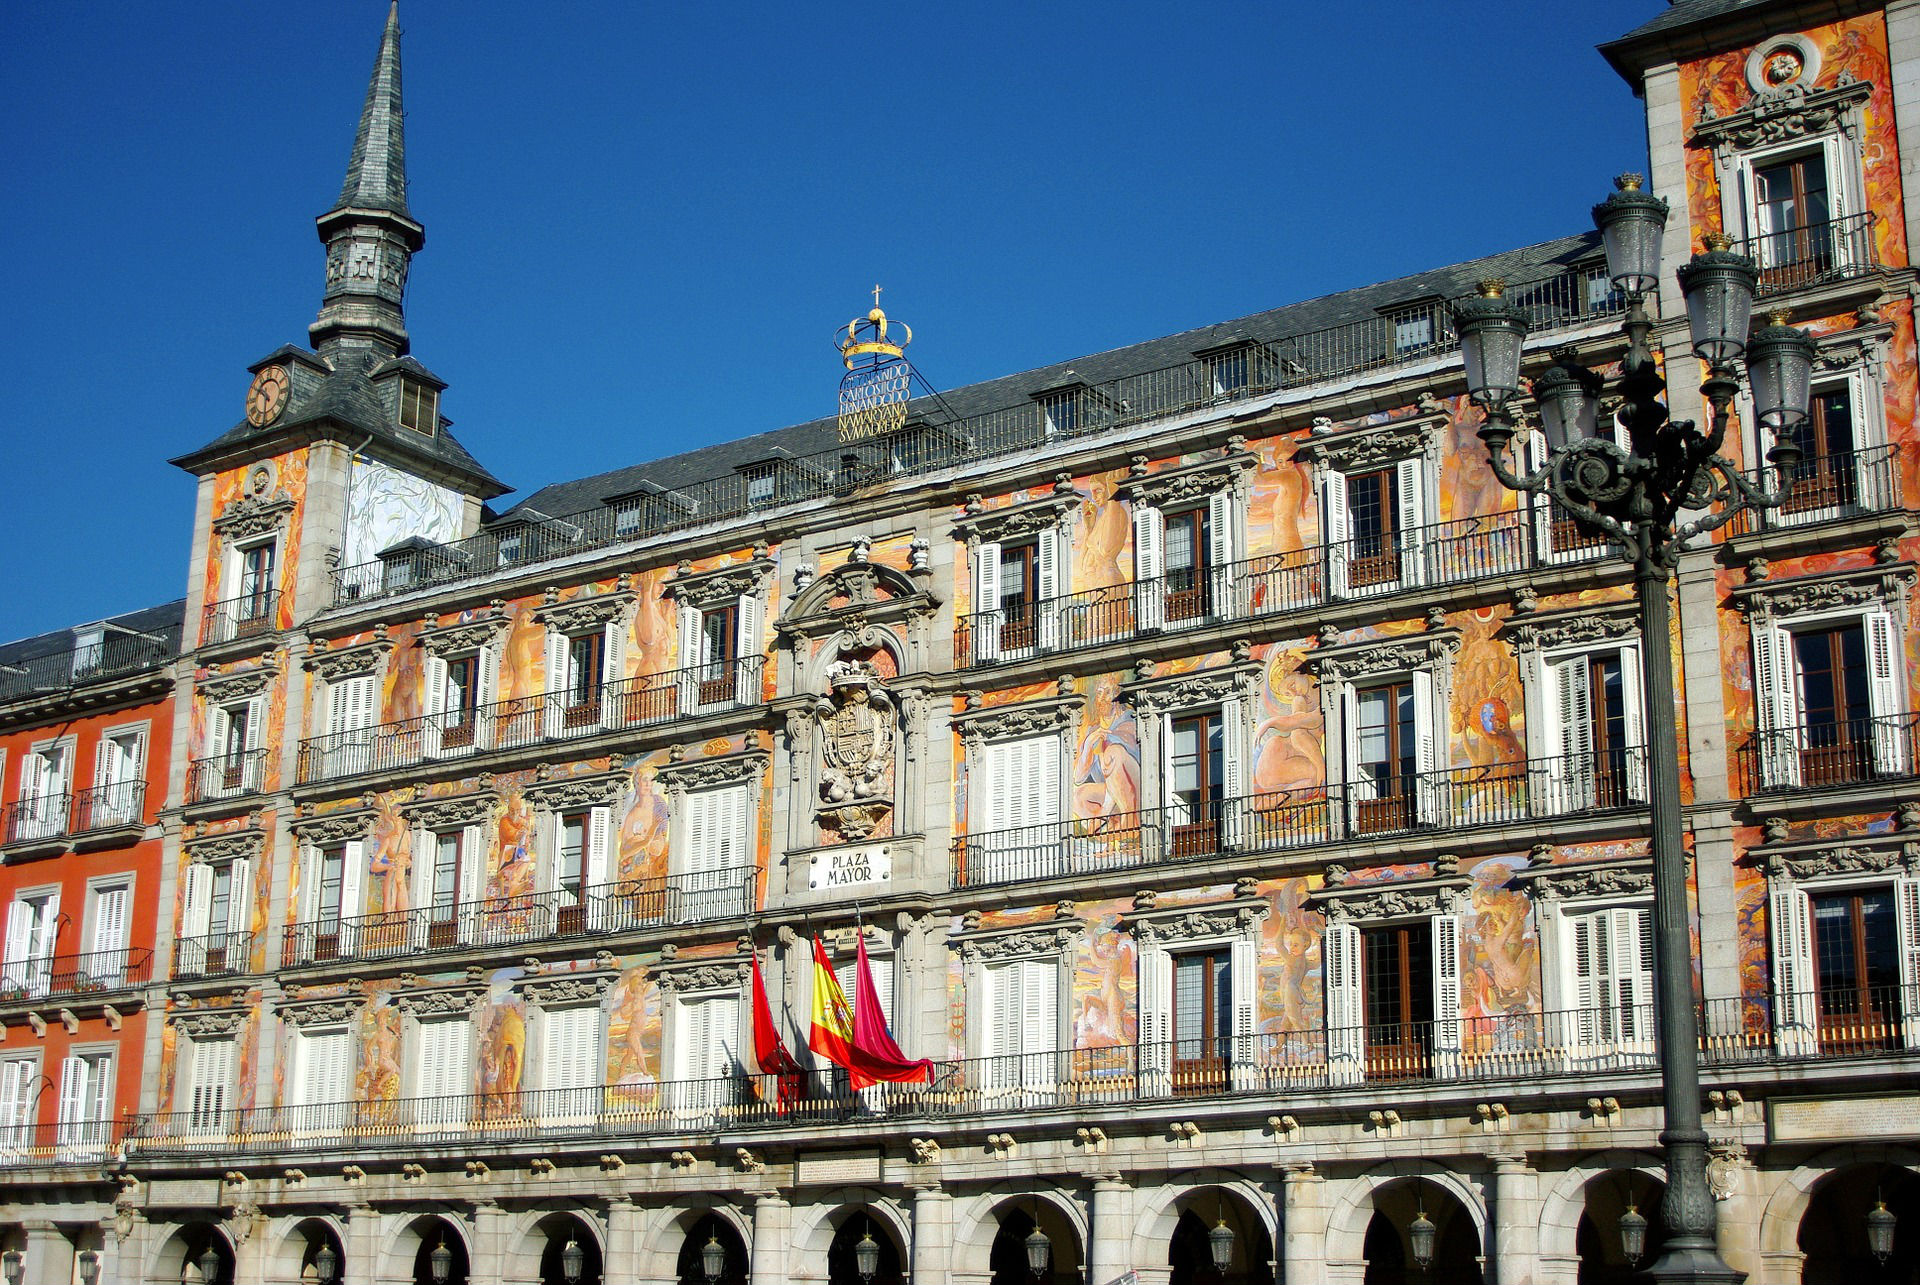 Stroll around the Plaza Mayor